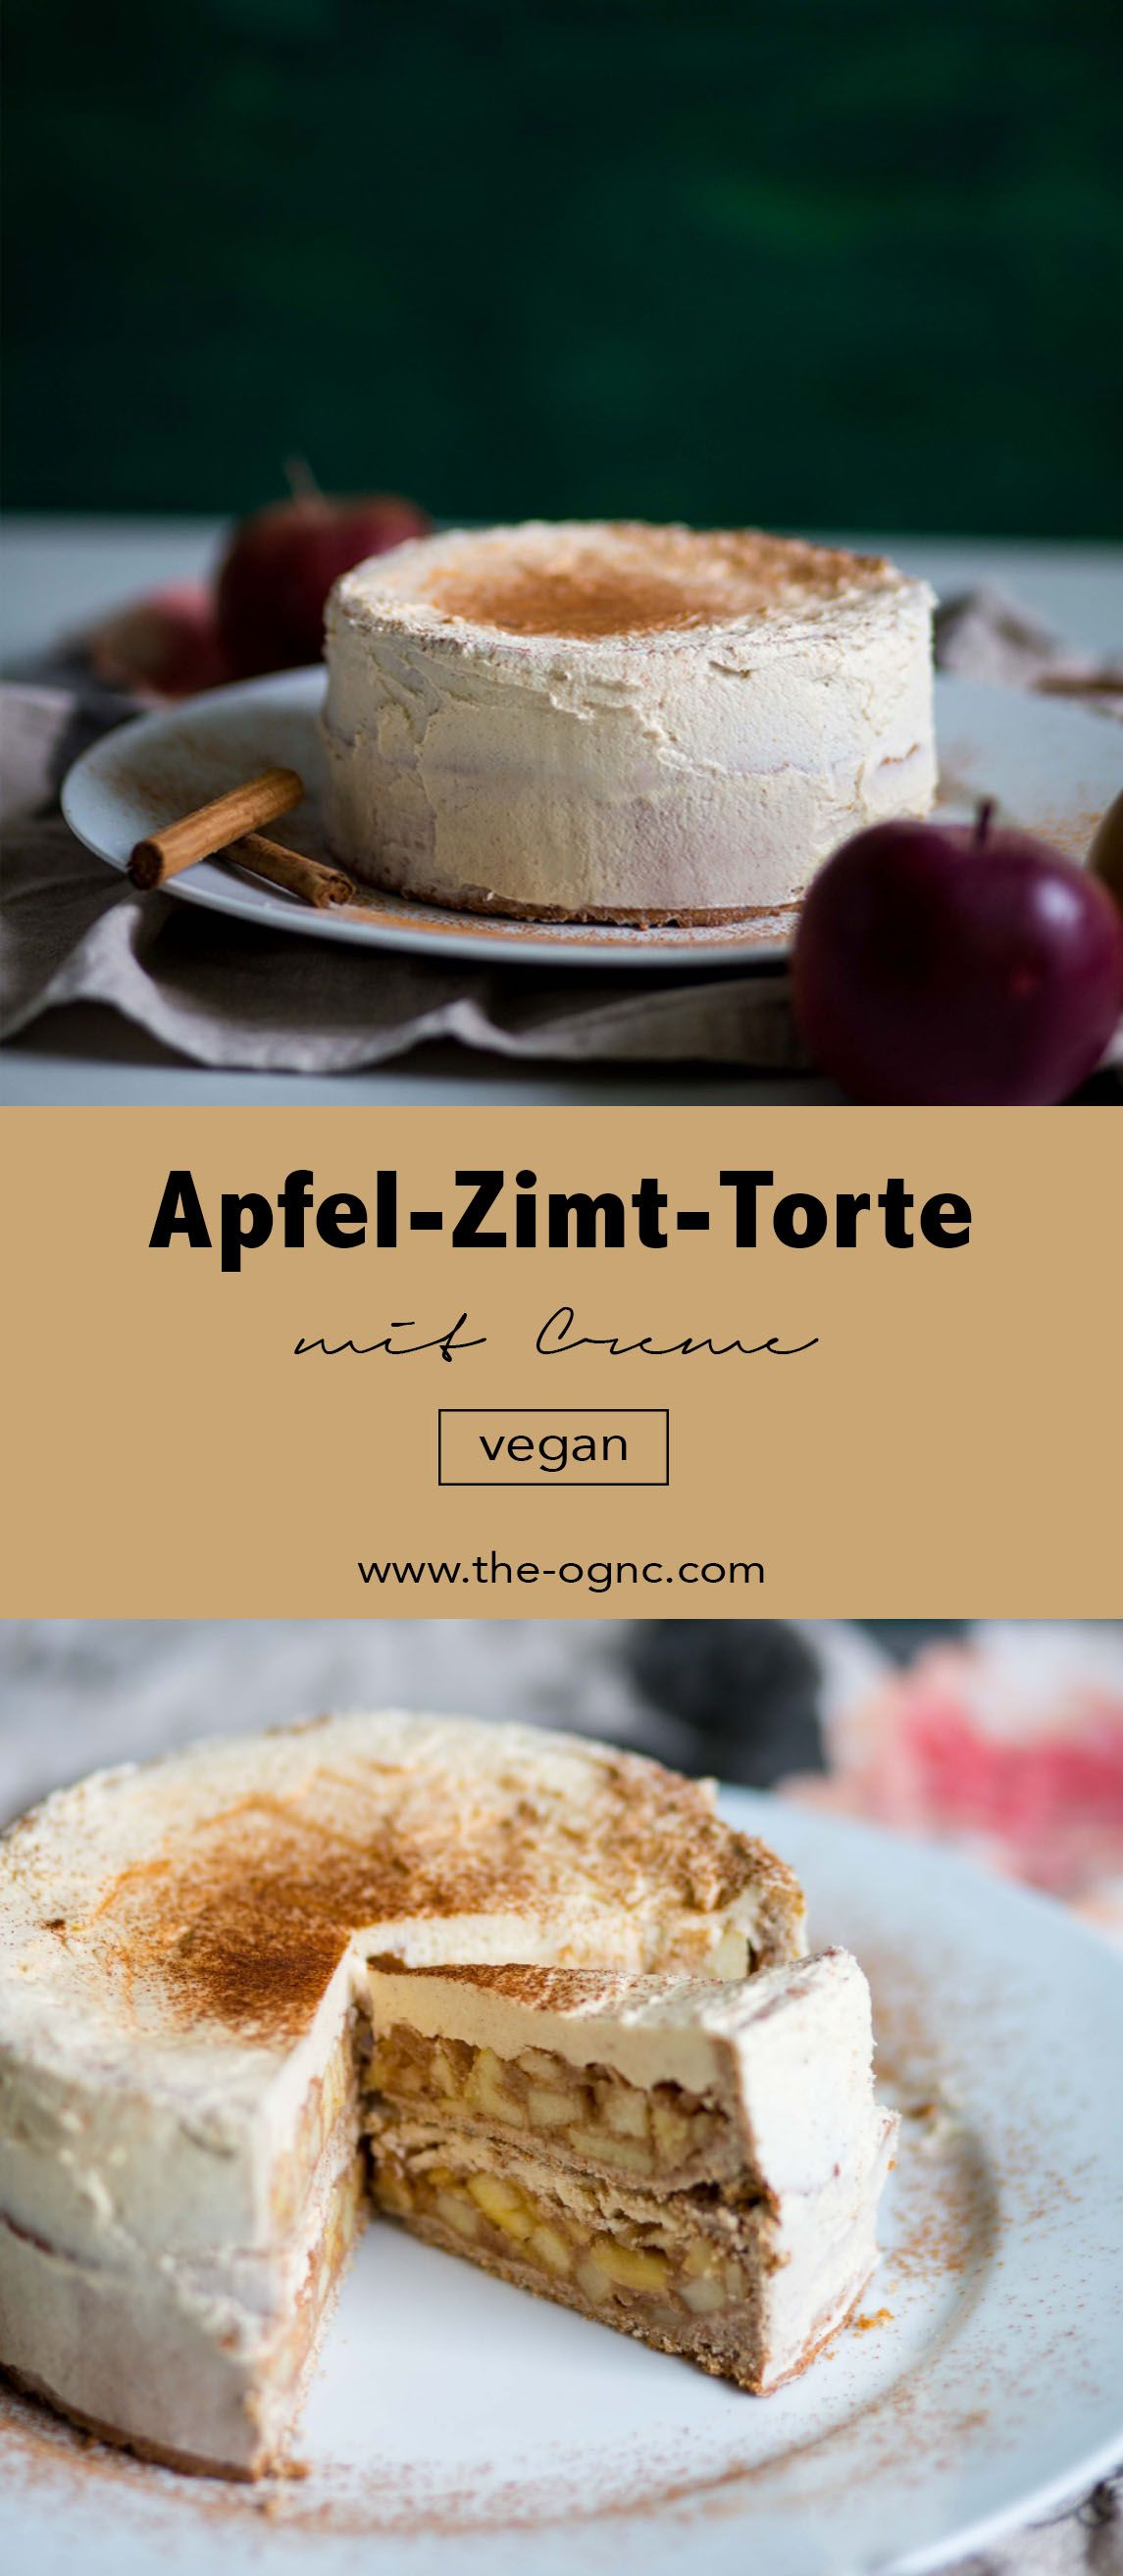 vegane apfel zimt torte mit creme einfach und lecker do um g n pinterest kuchen zimt. Black Bedroom Furniture Sets. Home Design Ideas